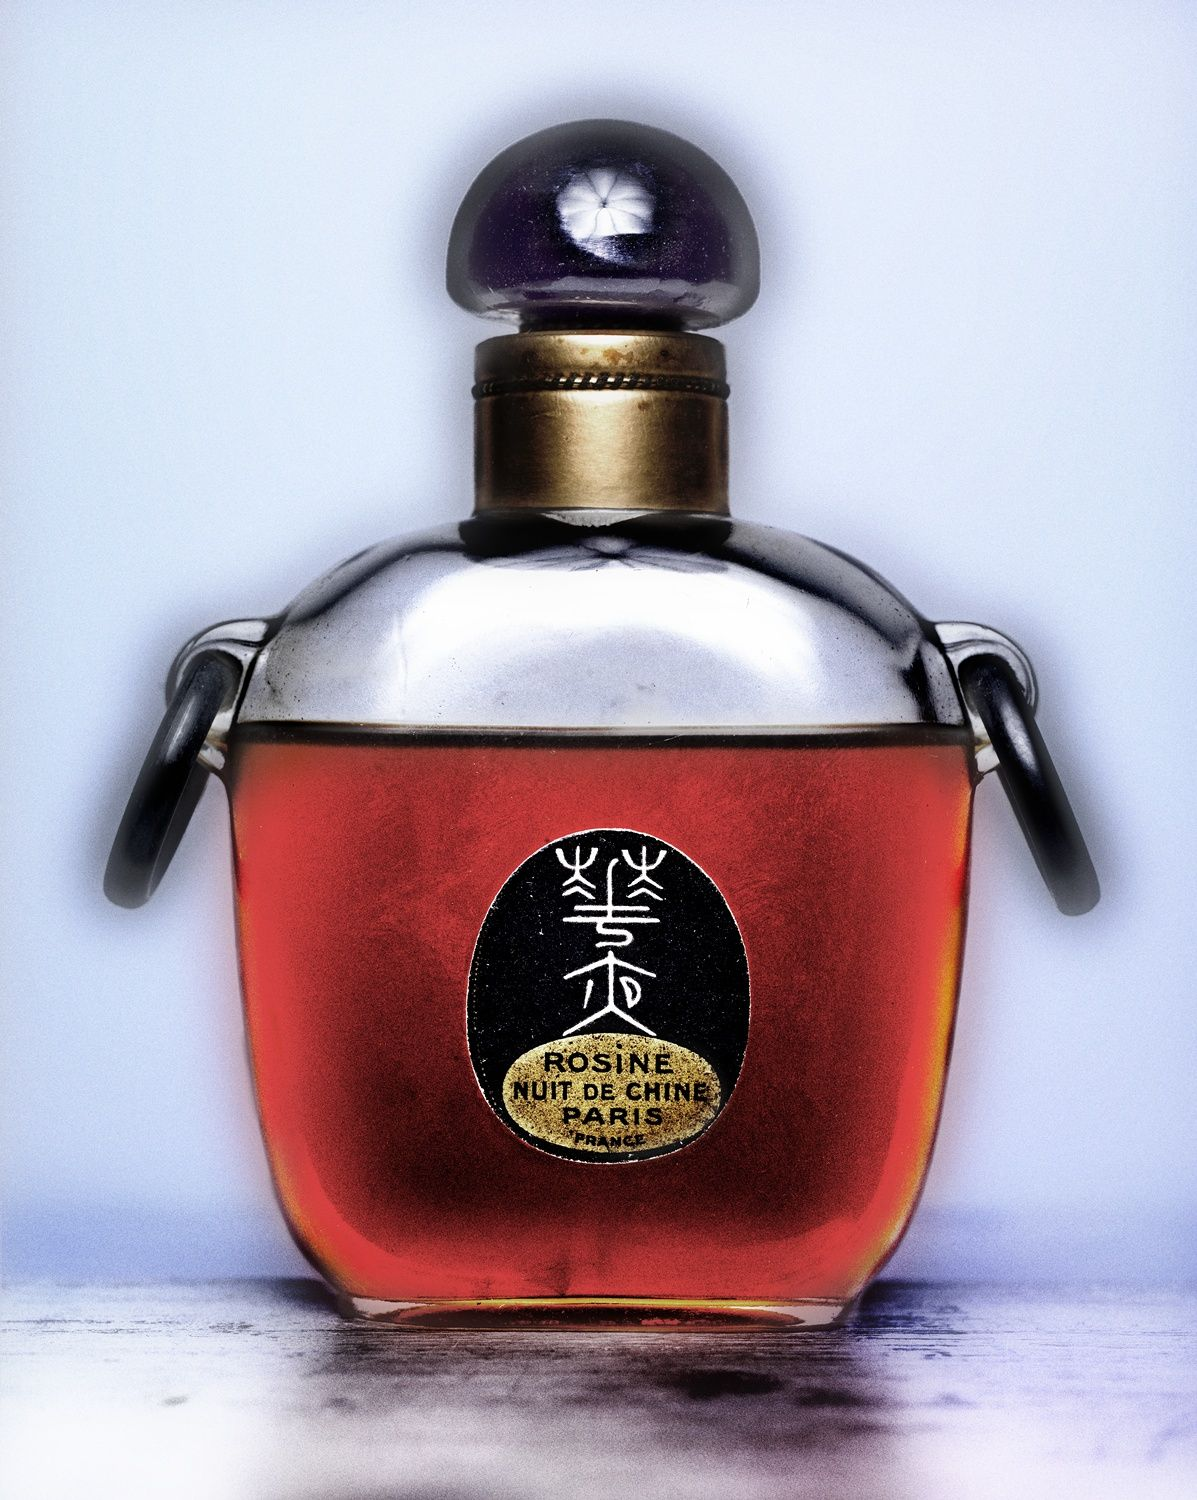 Parfums Les De RosinefrenchFounded 1911Paul Poiretfrench CBoerxWQd